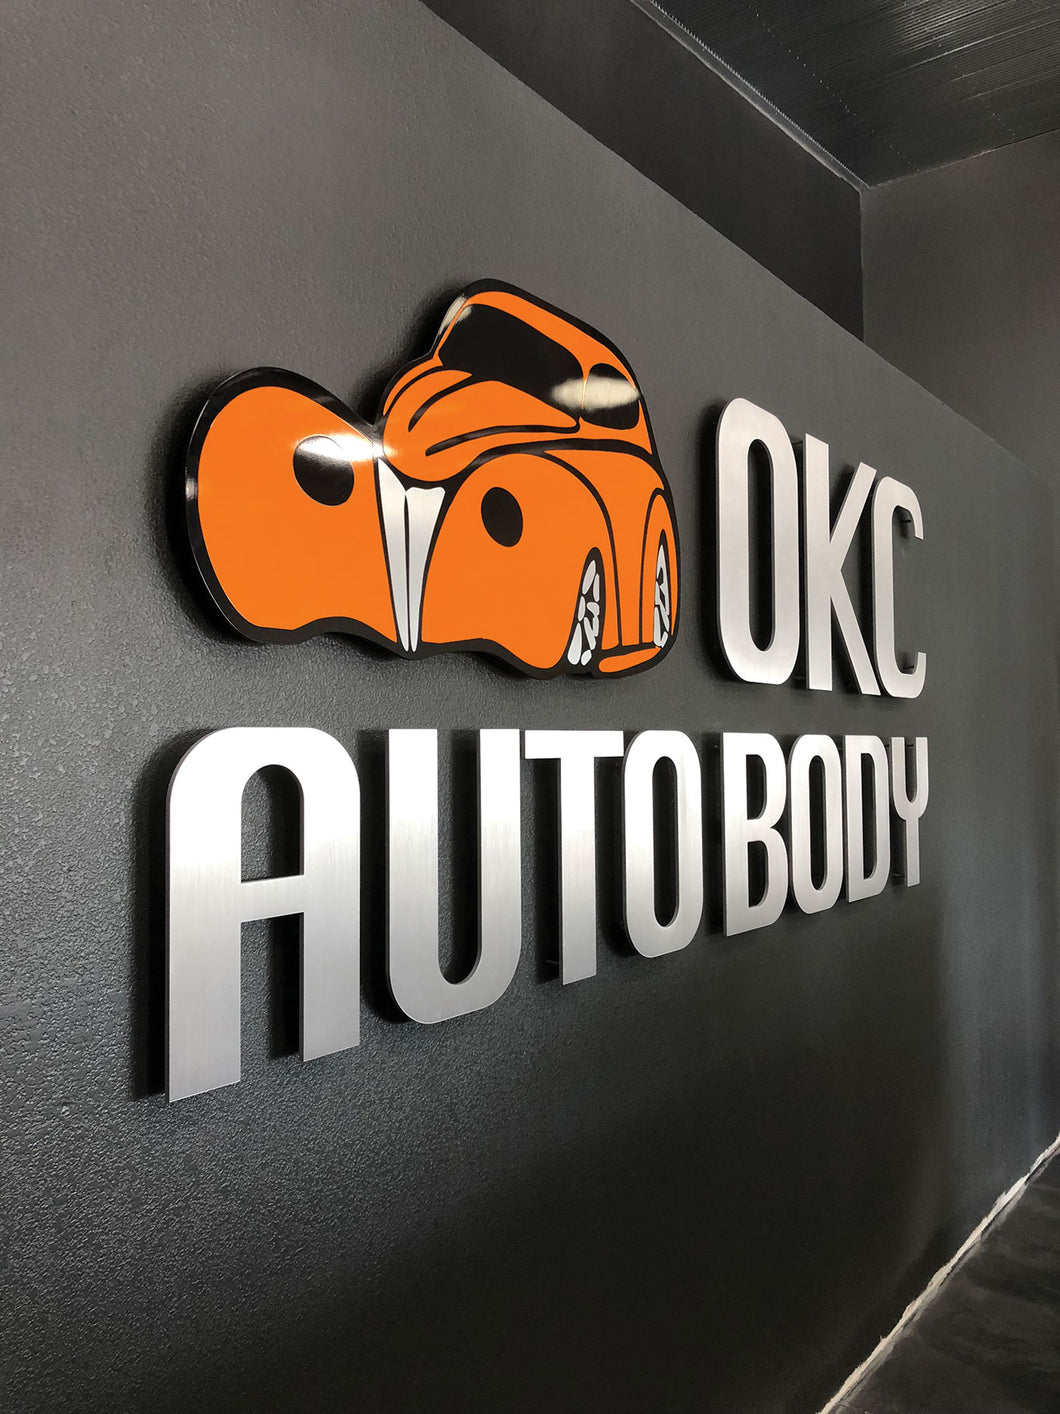 Precision Cut Aluminum Letters and Painted Graphics